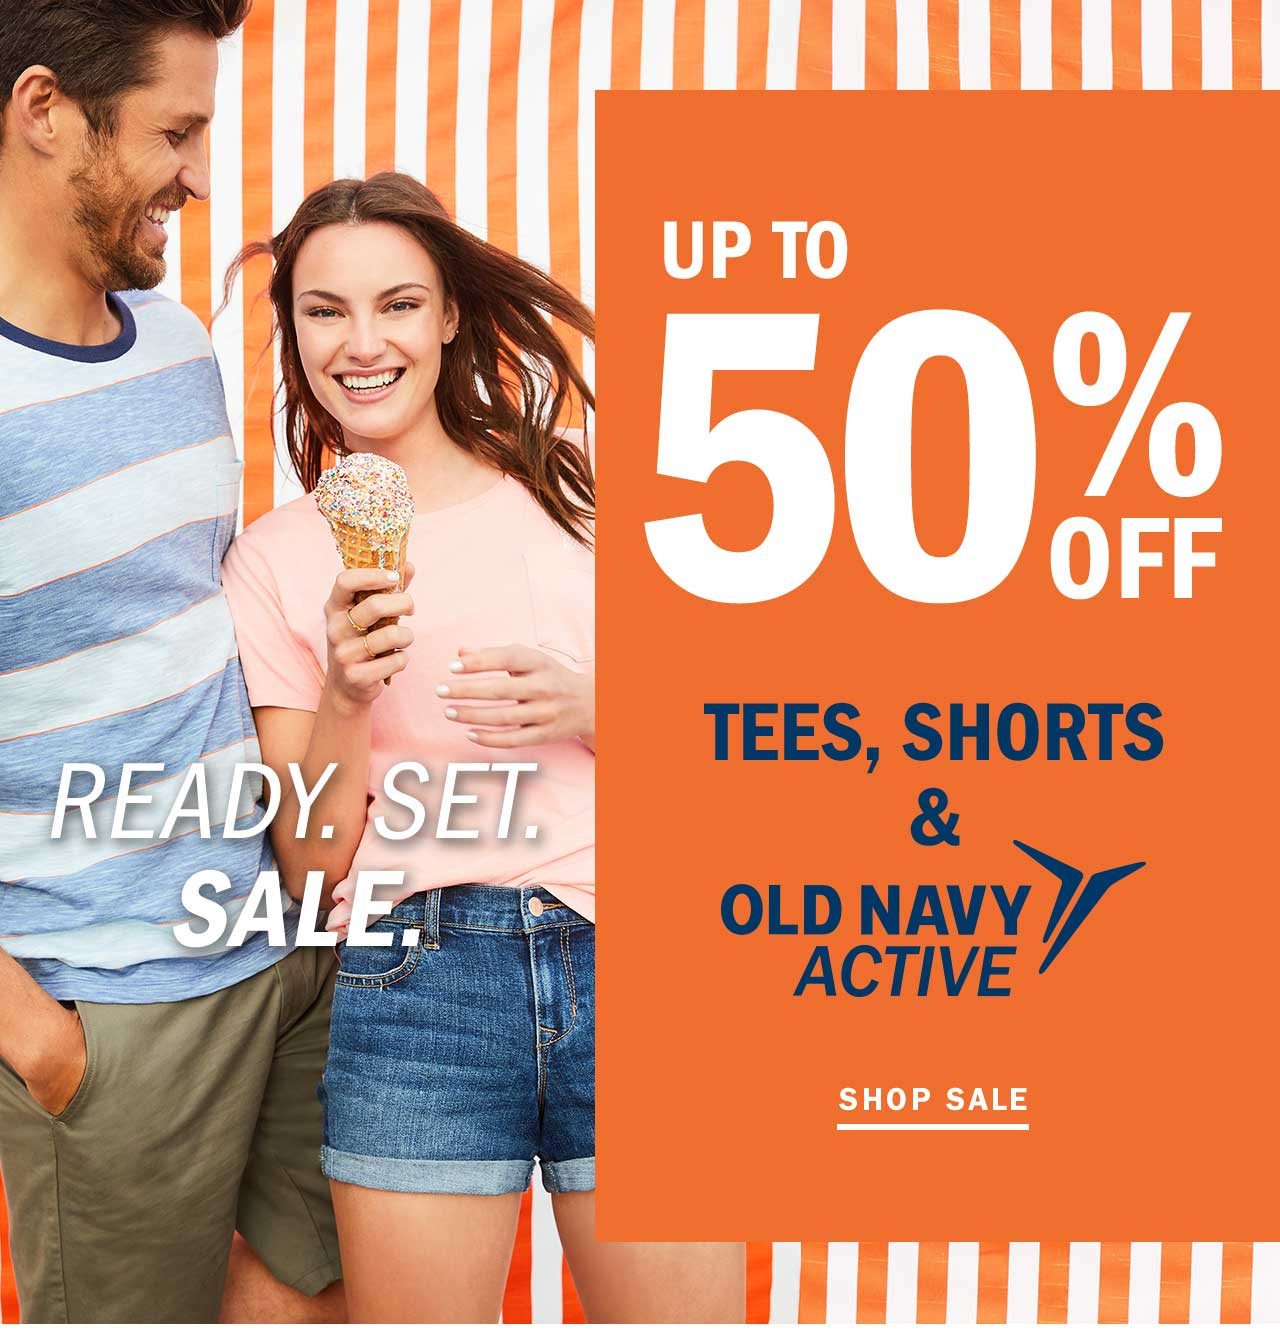 Old Navy: 😆 Up to 50% OFF tees, shorts & activewear: You earned it ...